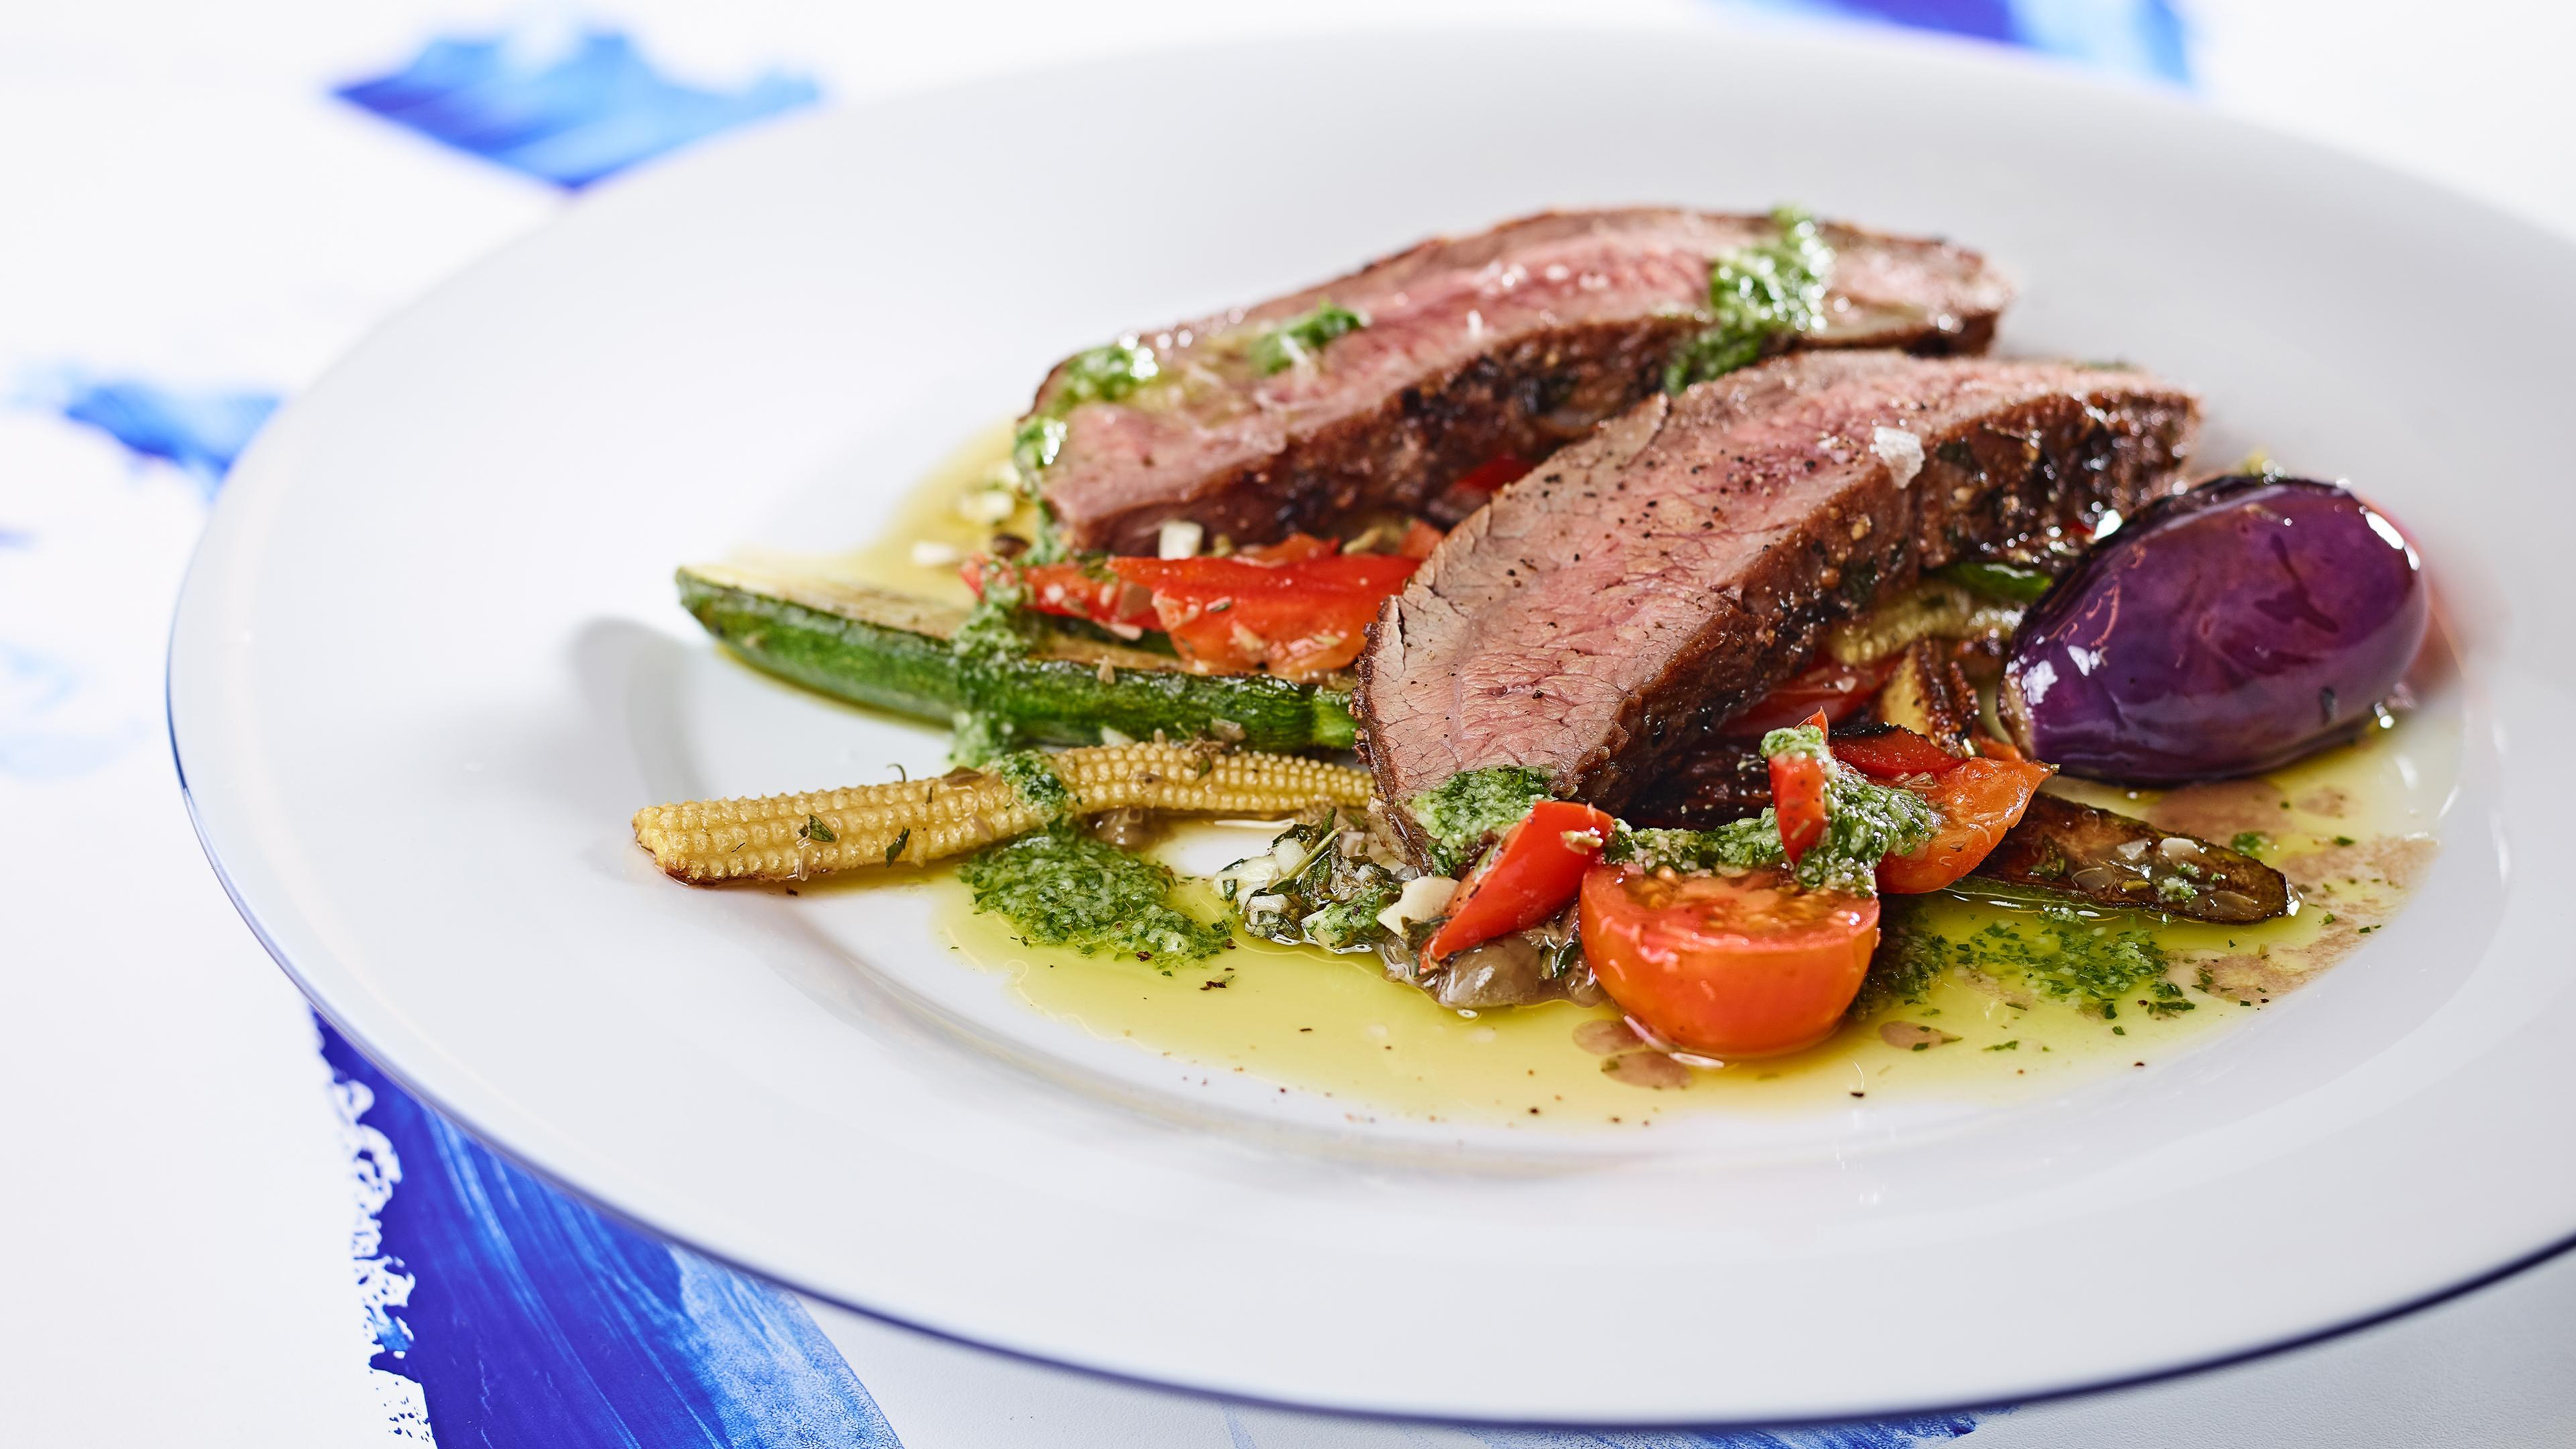 #2 Grilled vegetables with flank steak and pesto